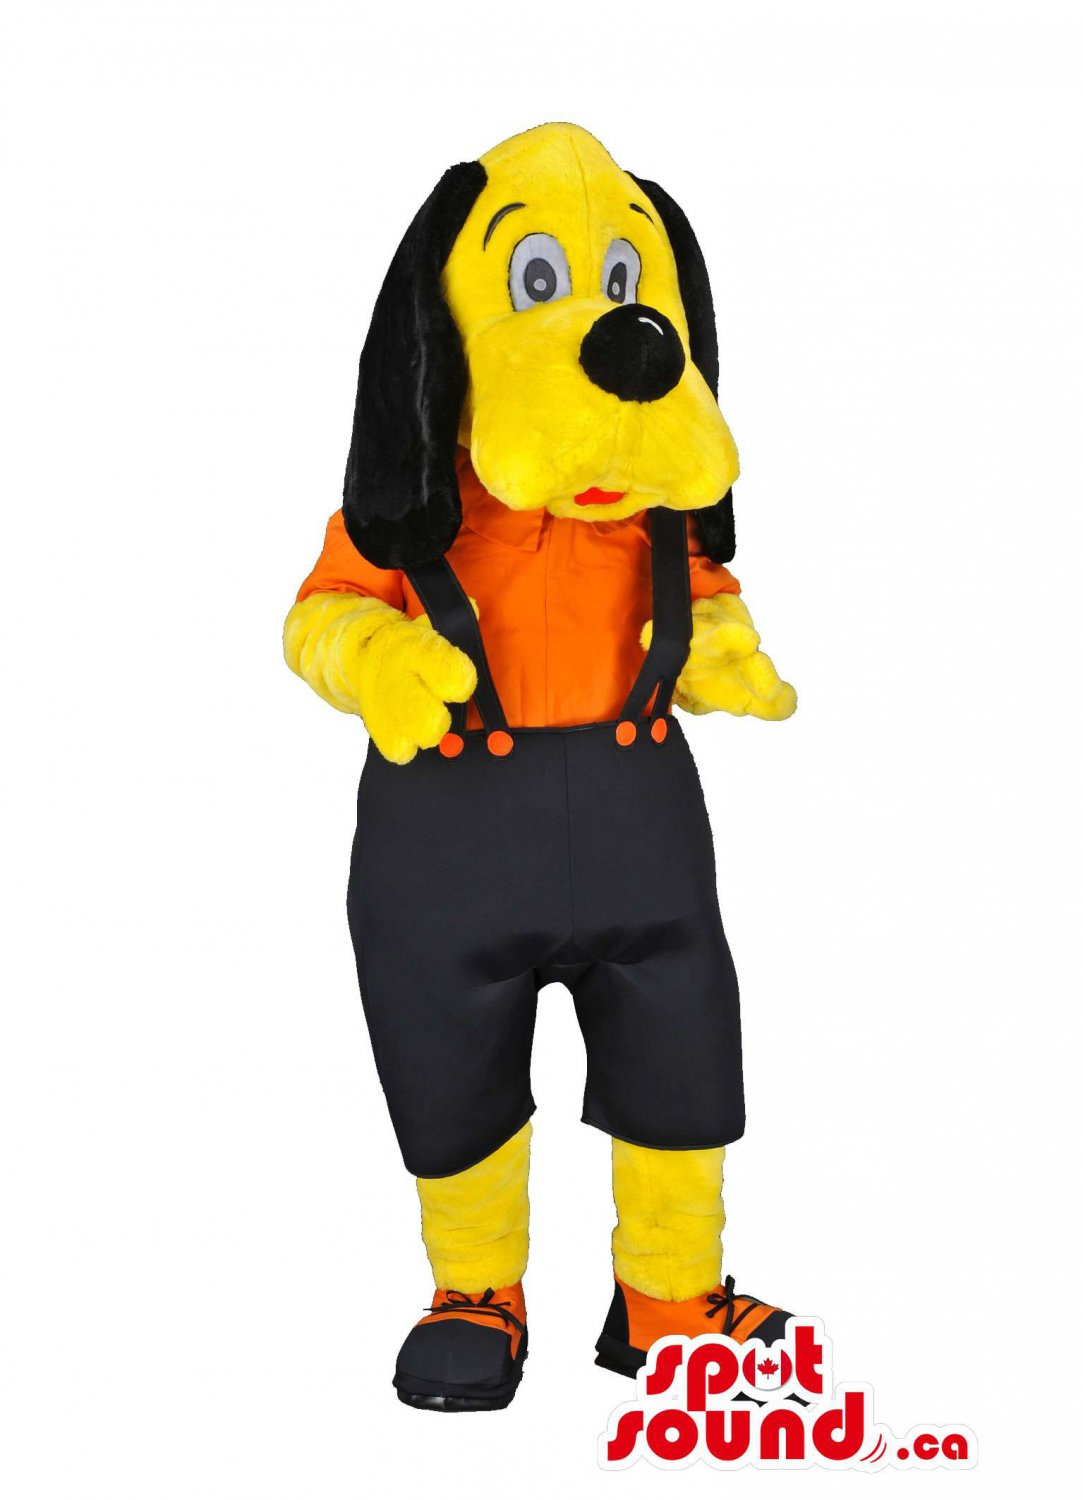 Yellow Dog In Black Pants With Suspenders And Orange Shirt